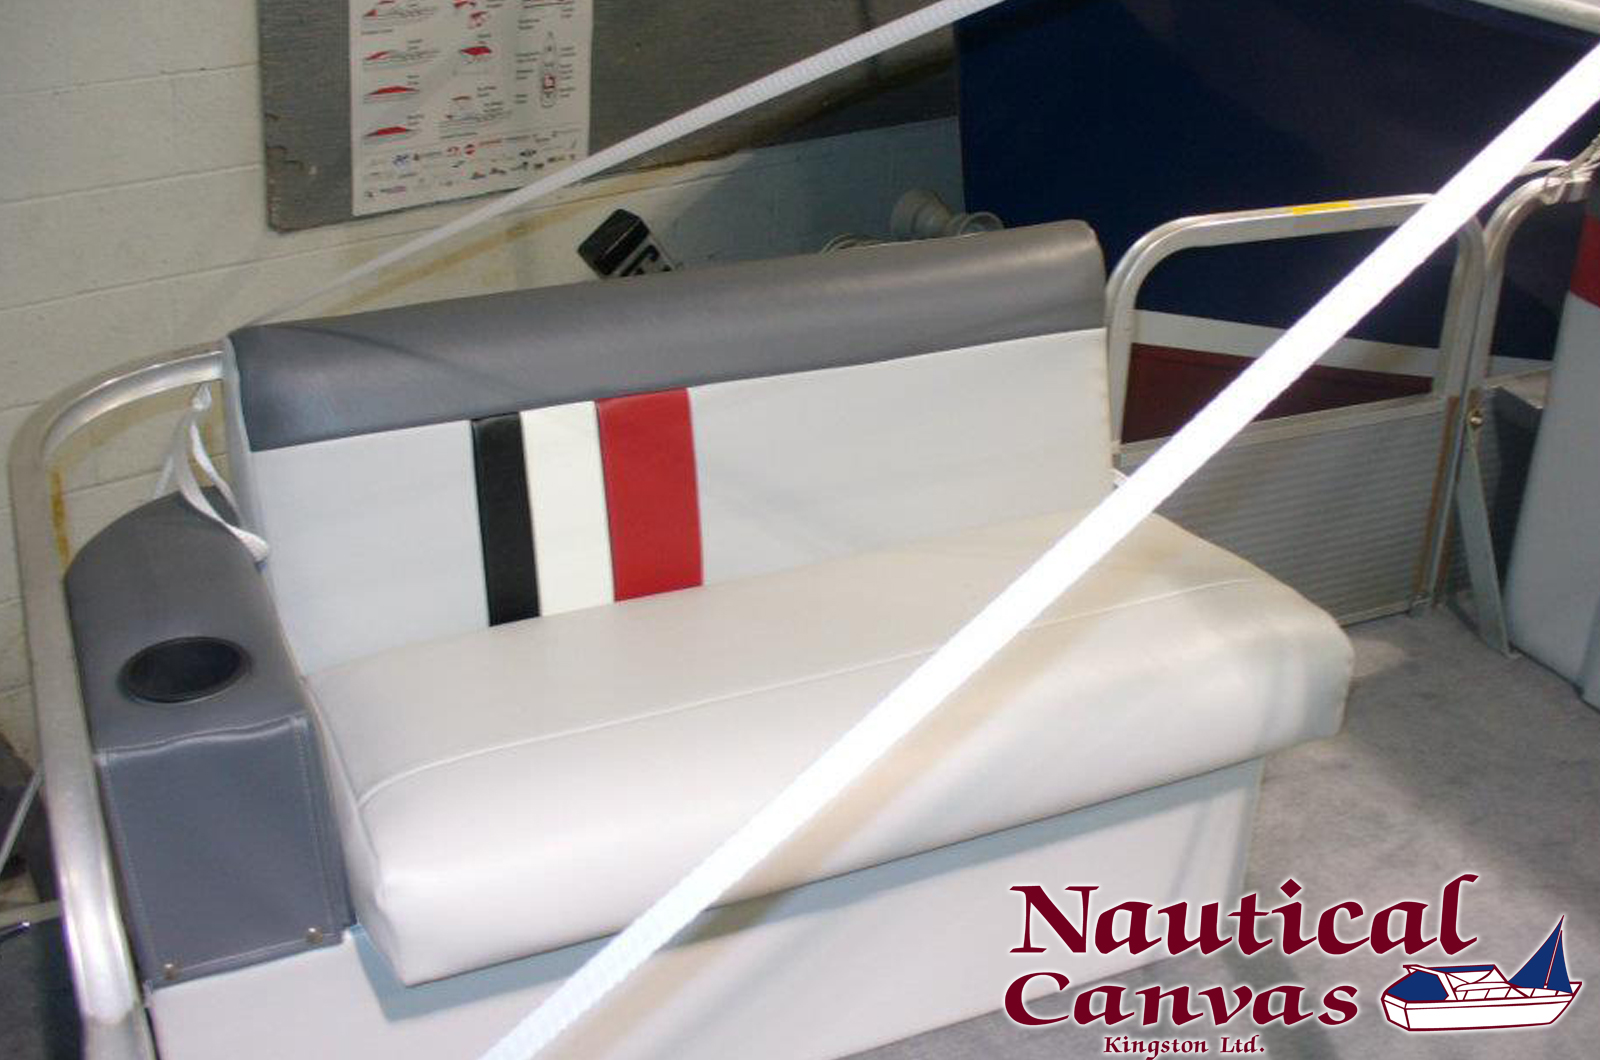 Nautical Canvas Kingston - View our Portfolio of Custom Marine Products